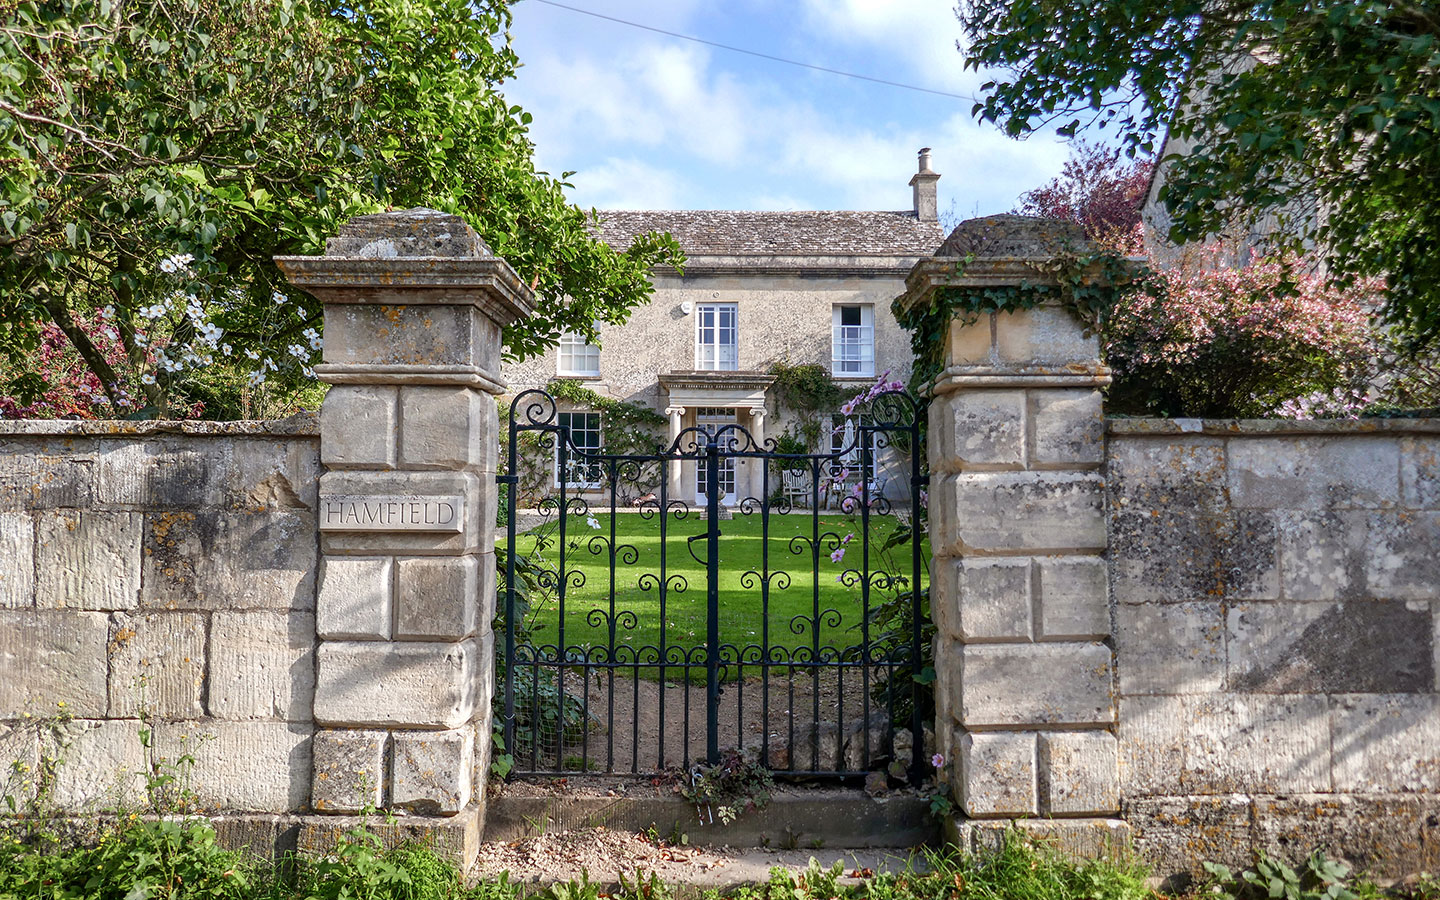 House in Painswick in the Cotswolds